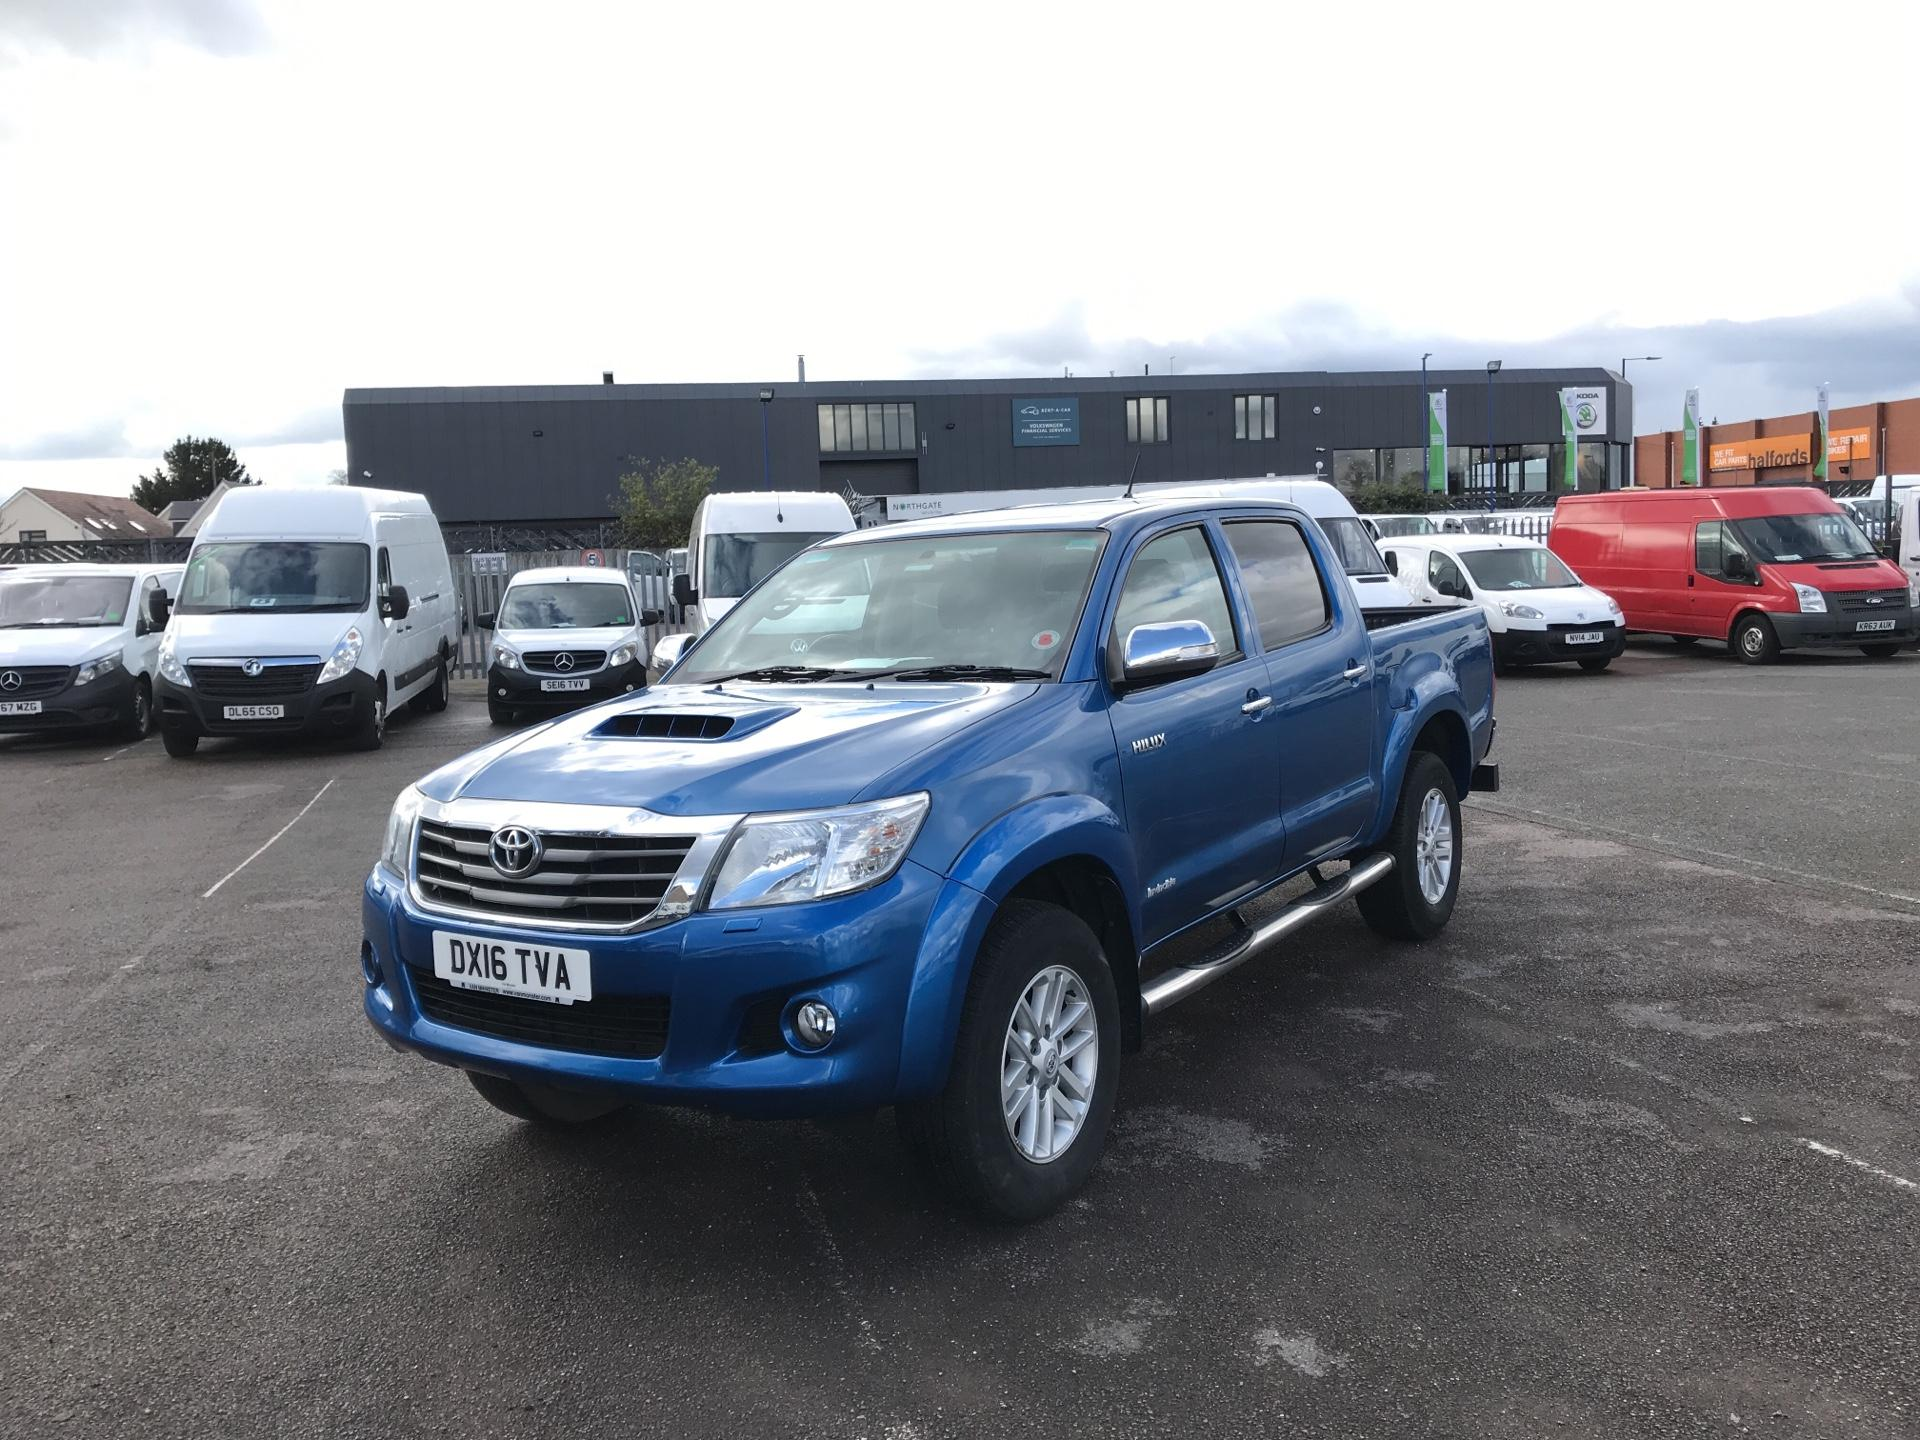 2016 Toyota Hilux  D/CAB PICK-UP 3.0 4WD 171 INVINCIBLE EURO 5 (DX16TVA) Image 7